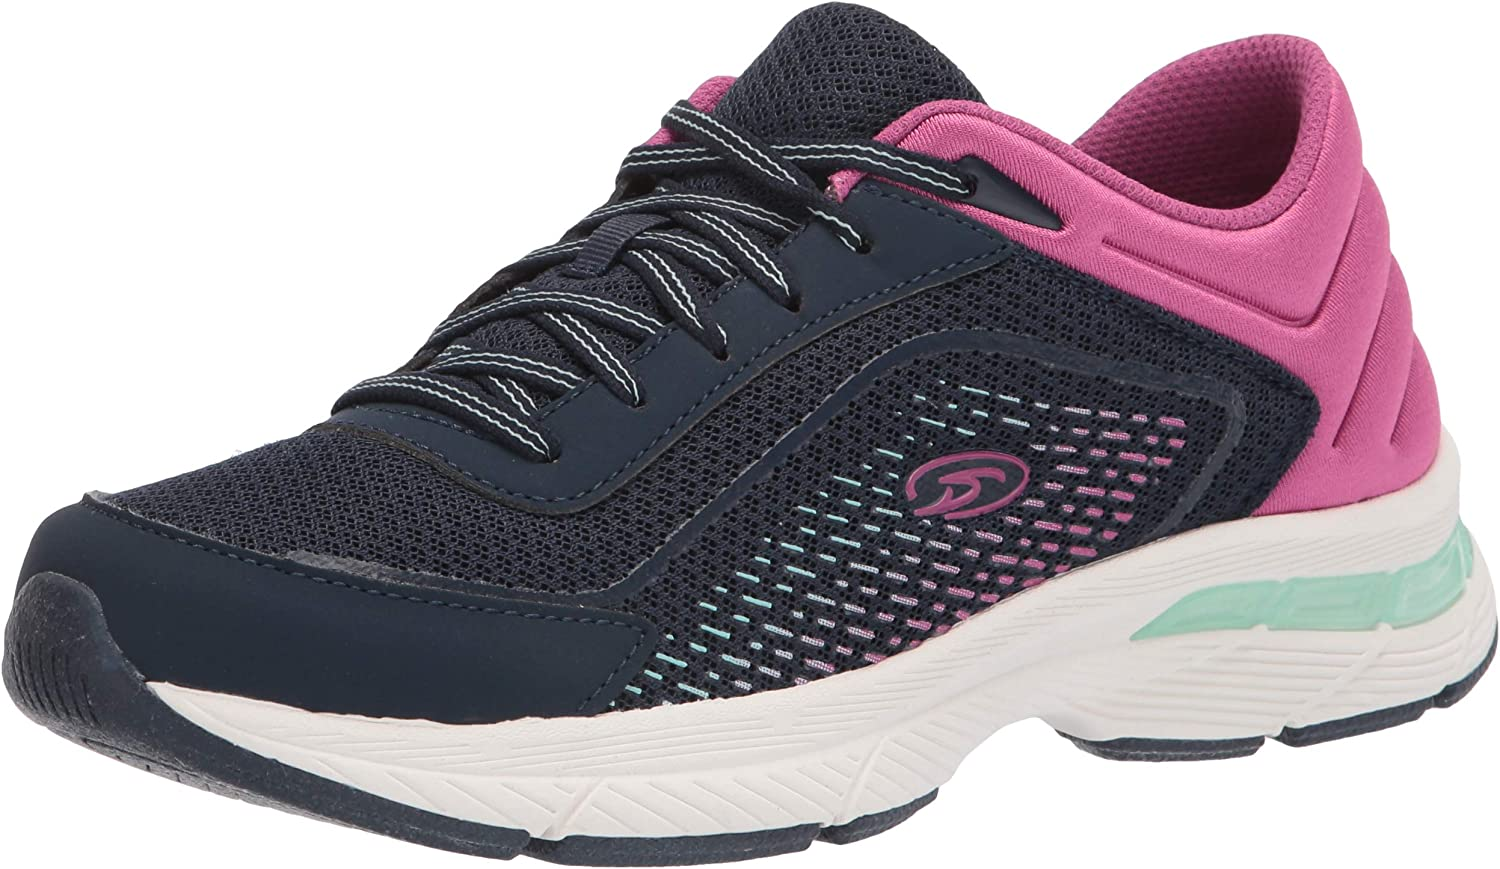 Dr. Department store Scholl's Shoes Women's Turn Around Oxford A surprise price is realized